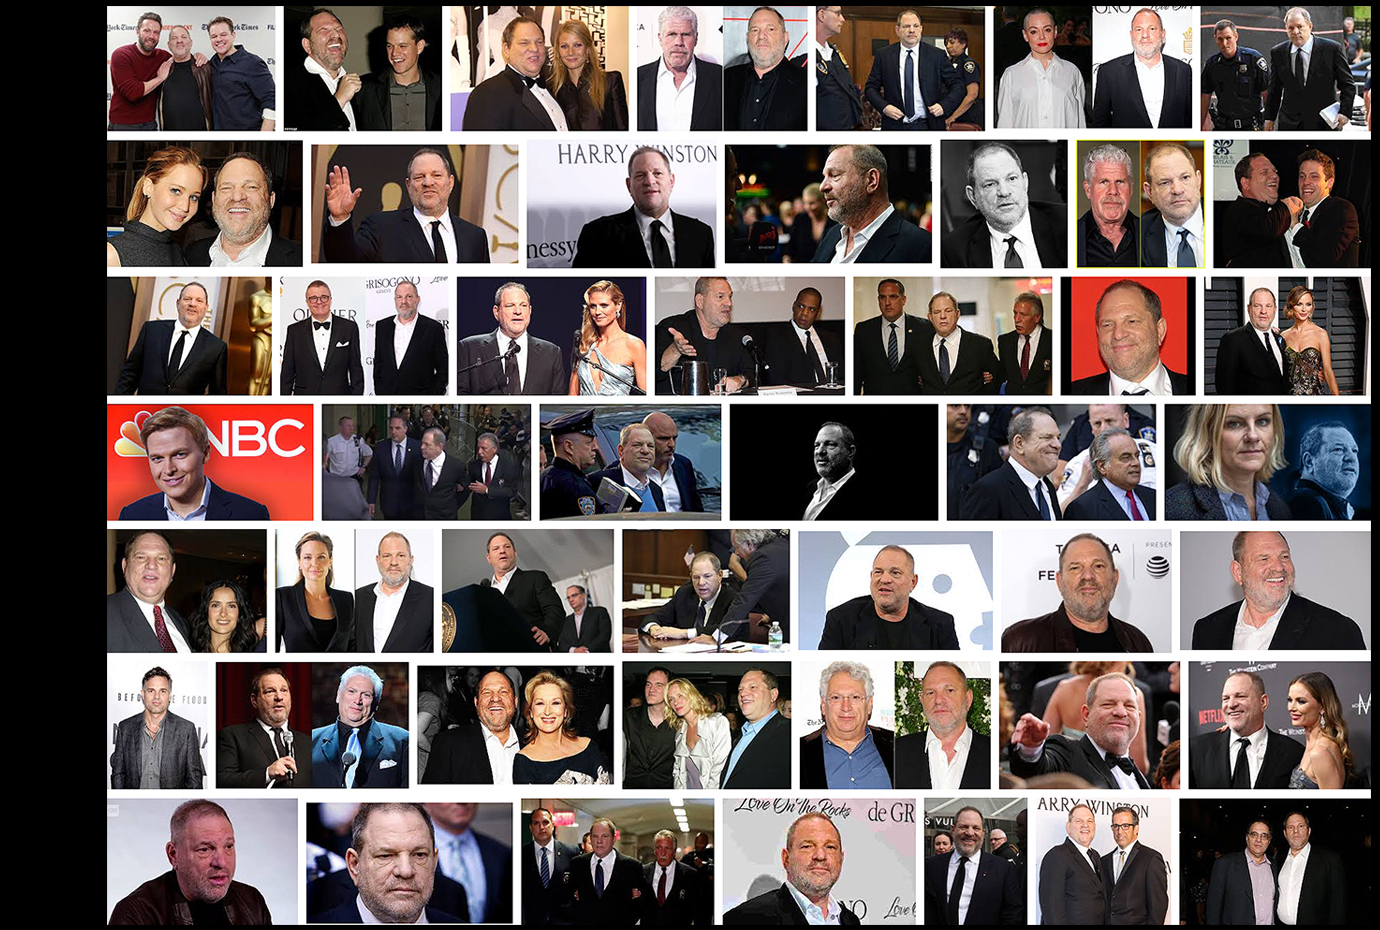 Tony_Ward_Studio_Harvey_Weinstein_google_images_Bob_Shell-1